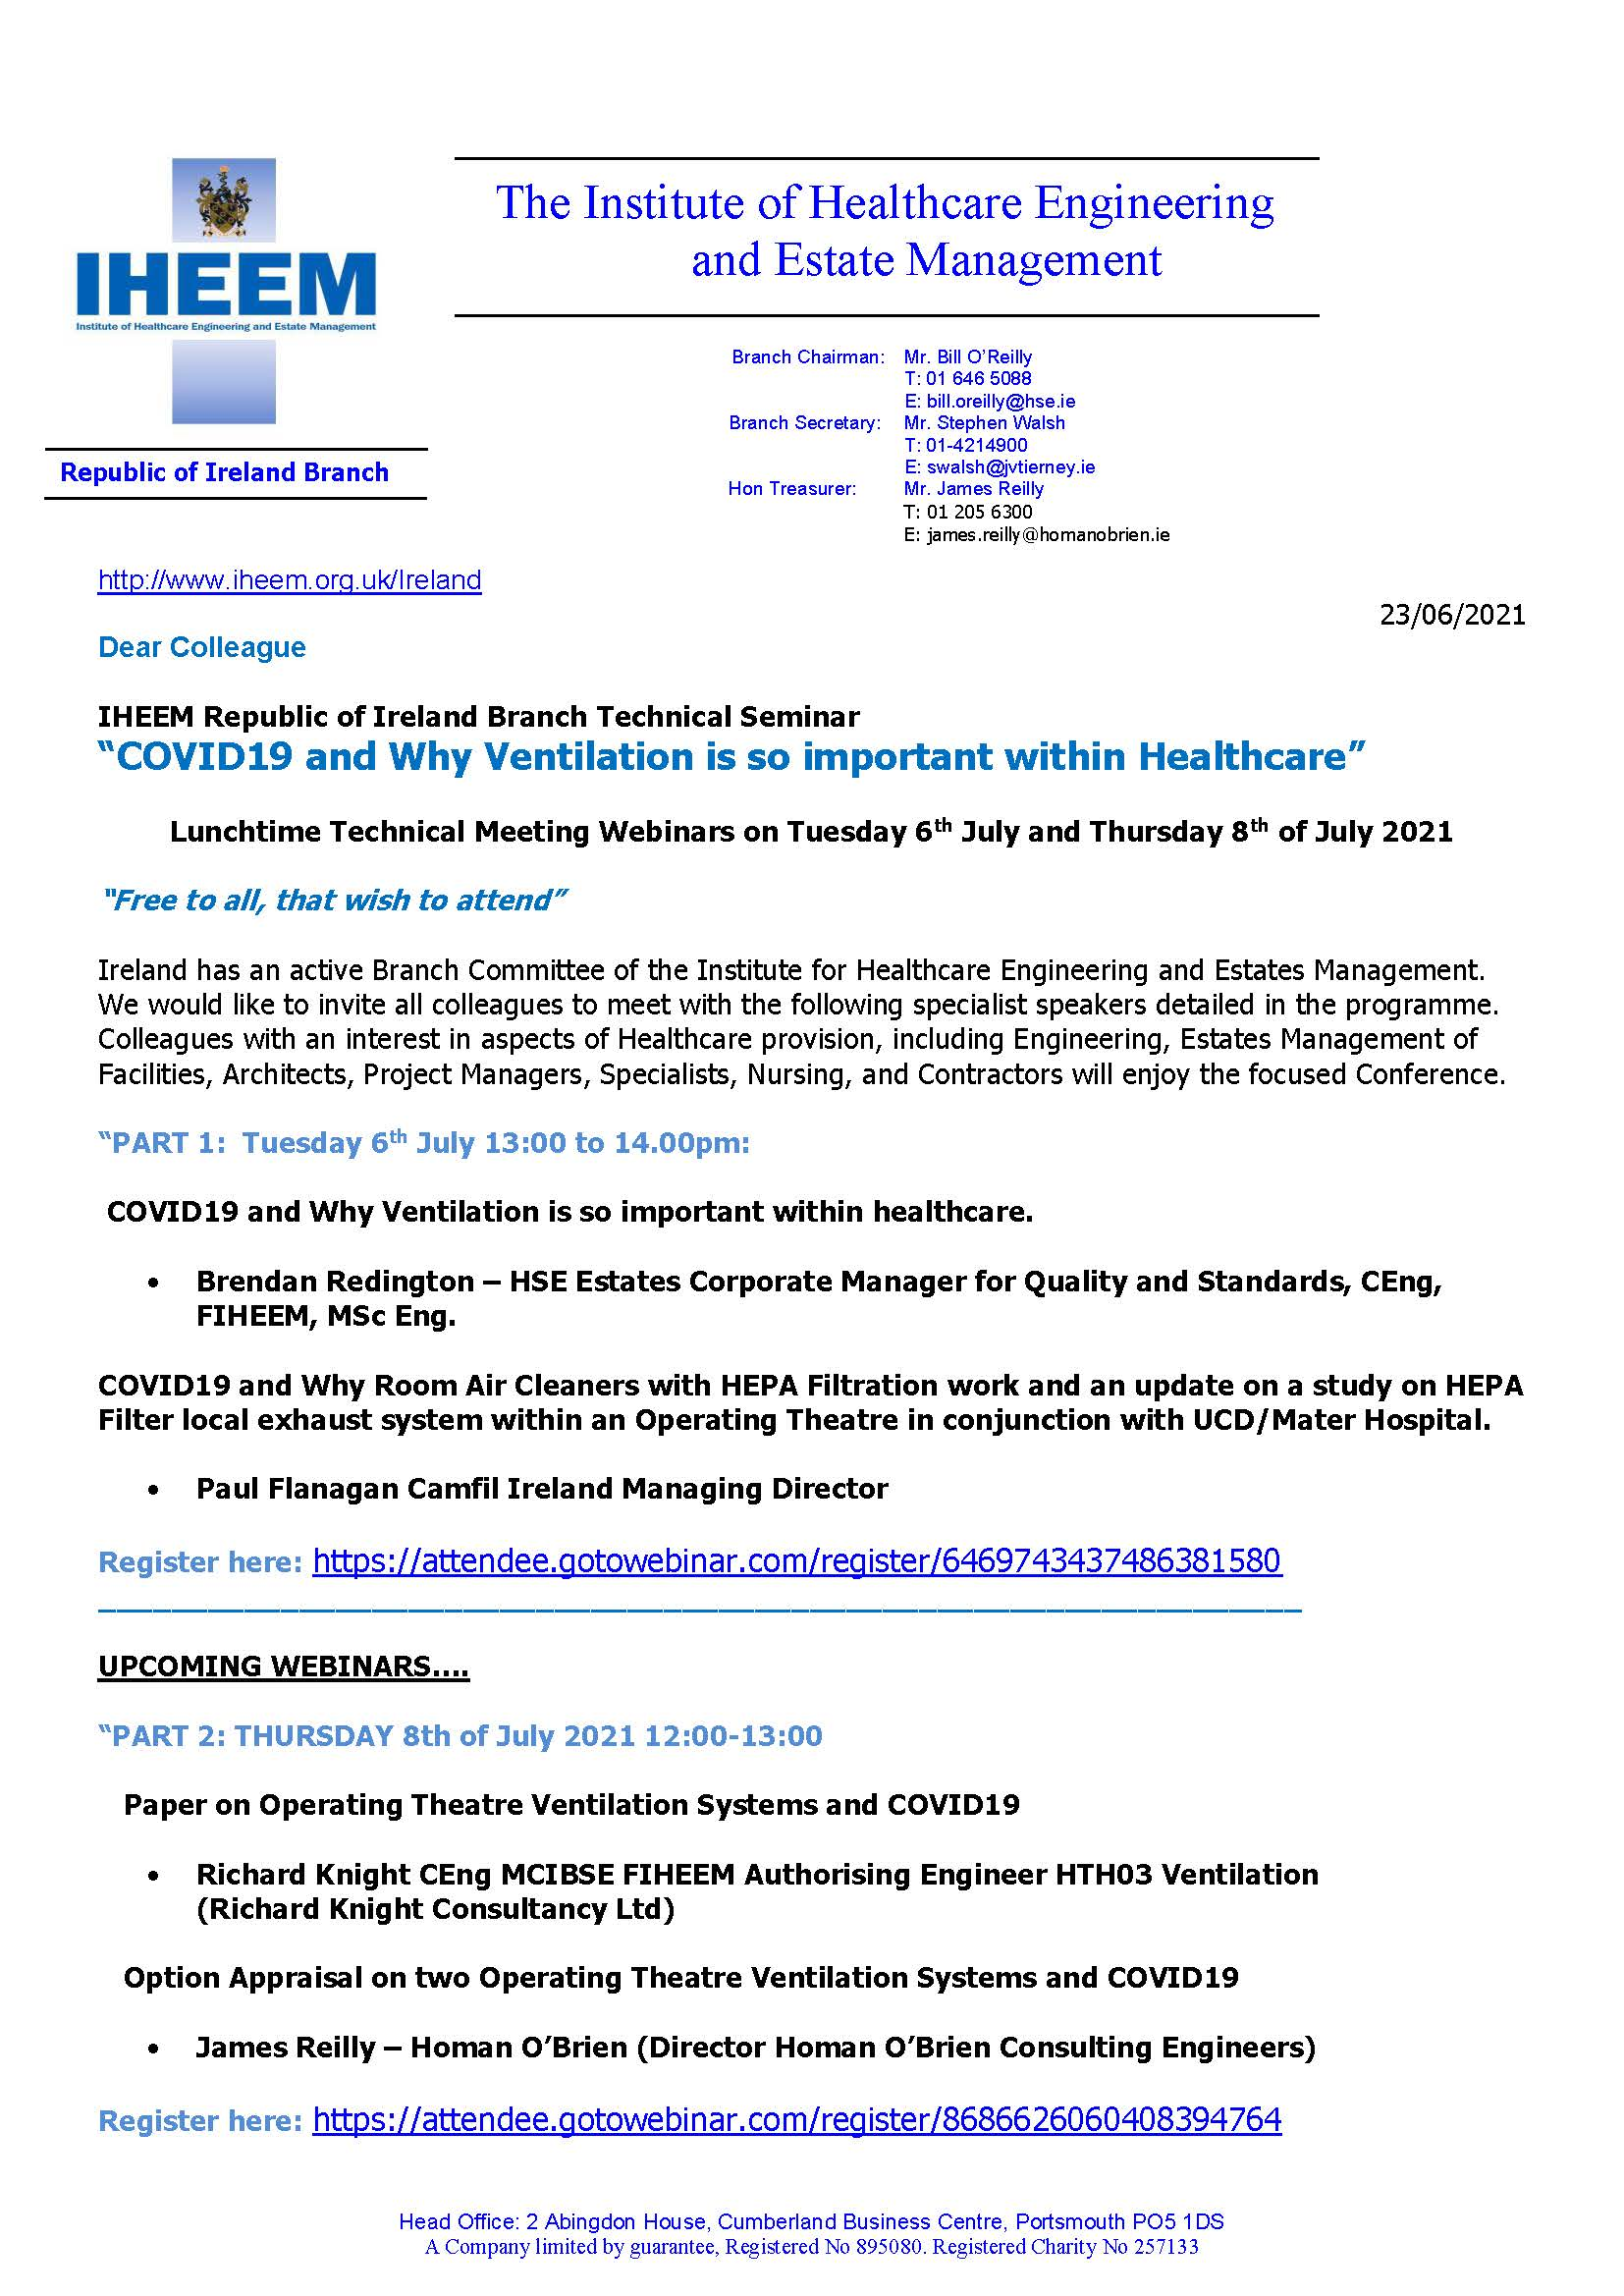 IHEEM FLYER about event